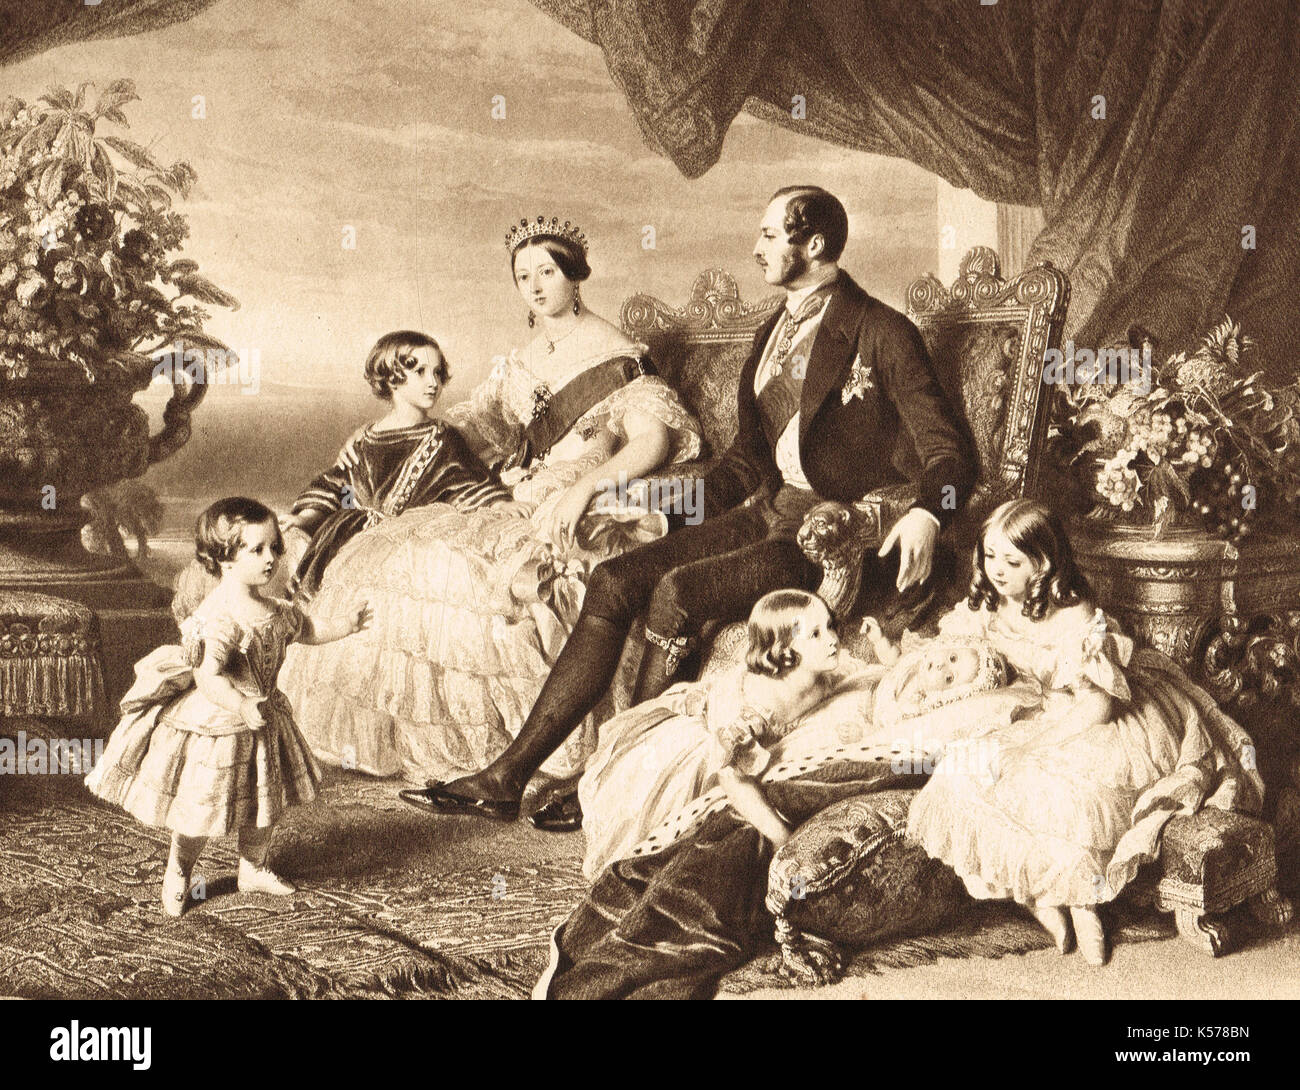 Queen Victoria, Prince Albert  and family group, 1848 - Stock Image